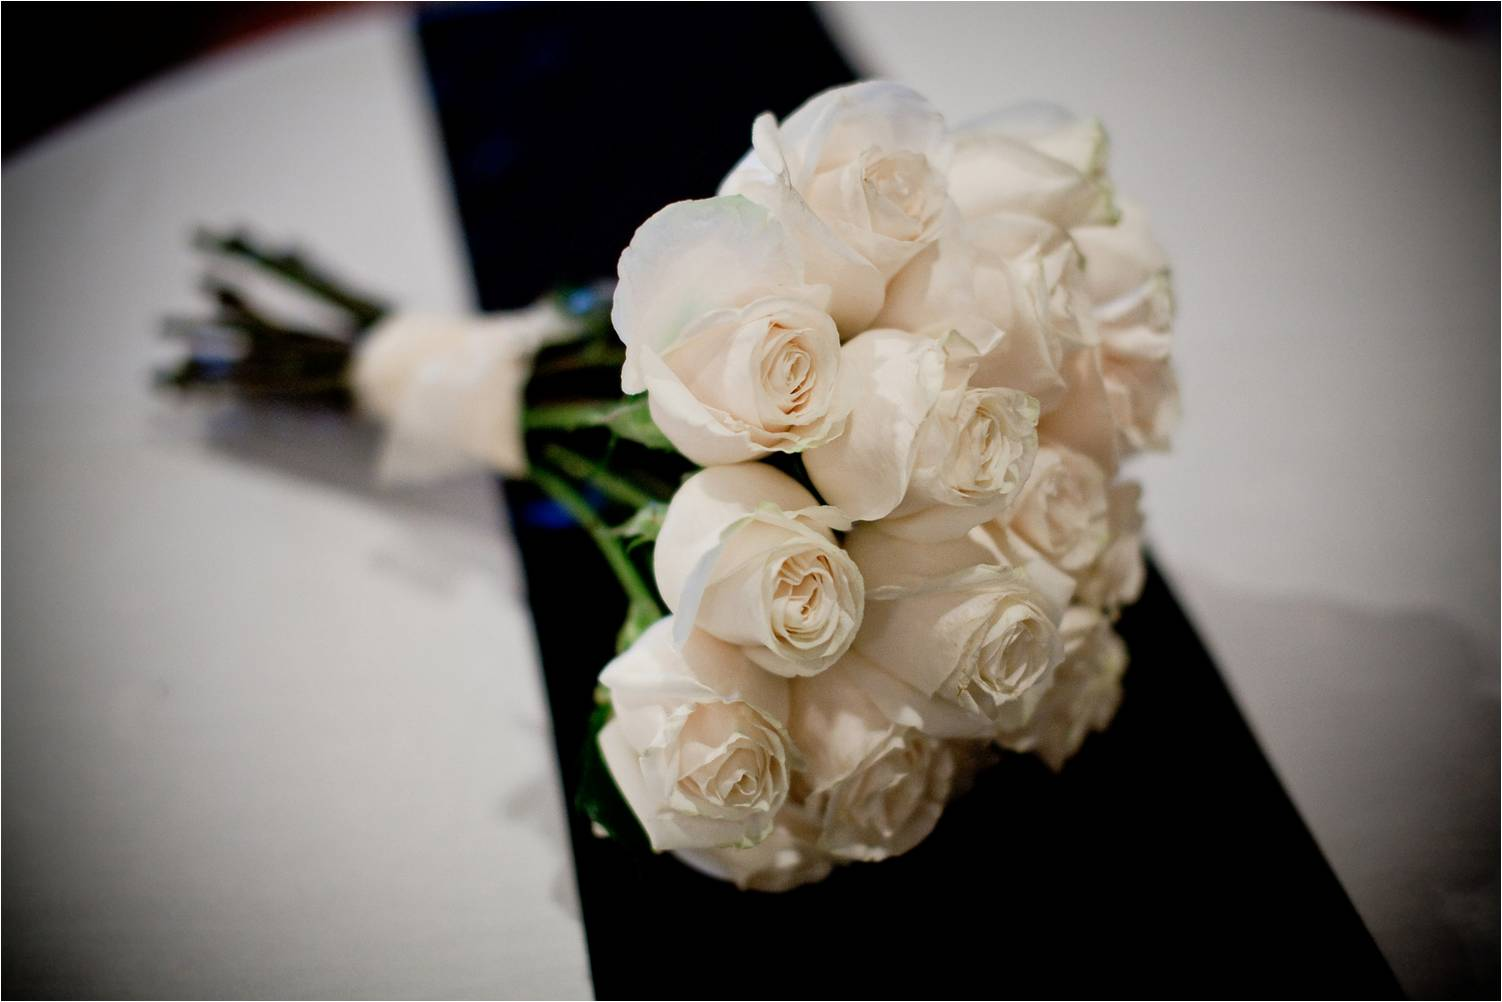 Pictures Of Wedding Bouquets Roses : De lovely affair top roses wedding bouquets